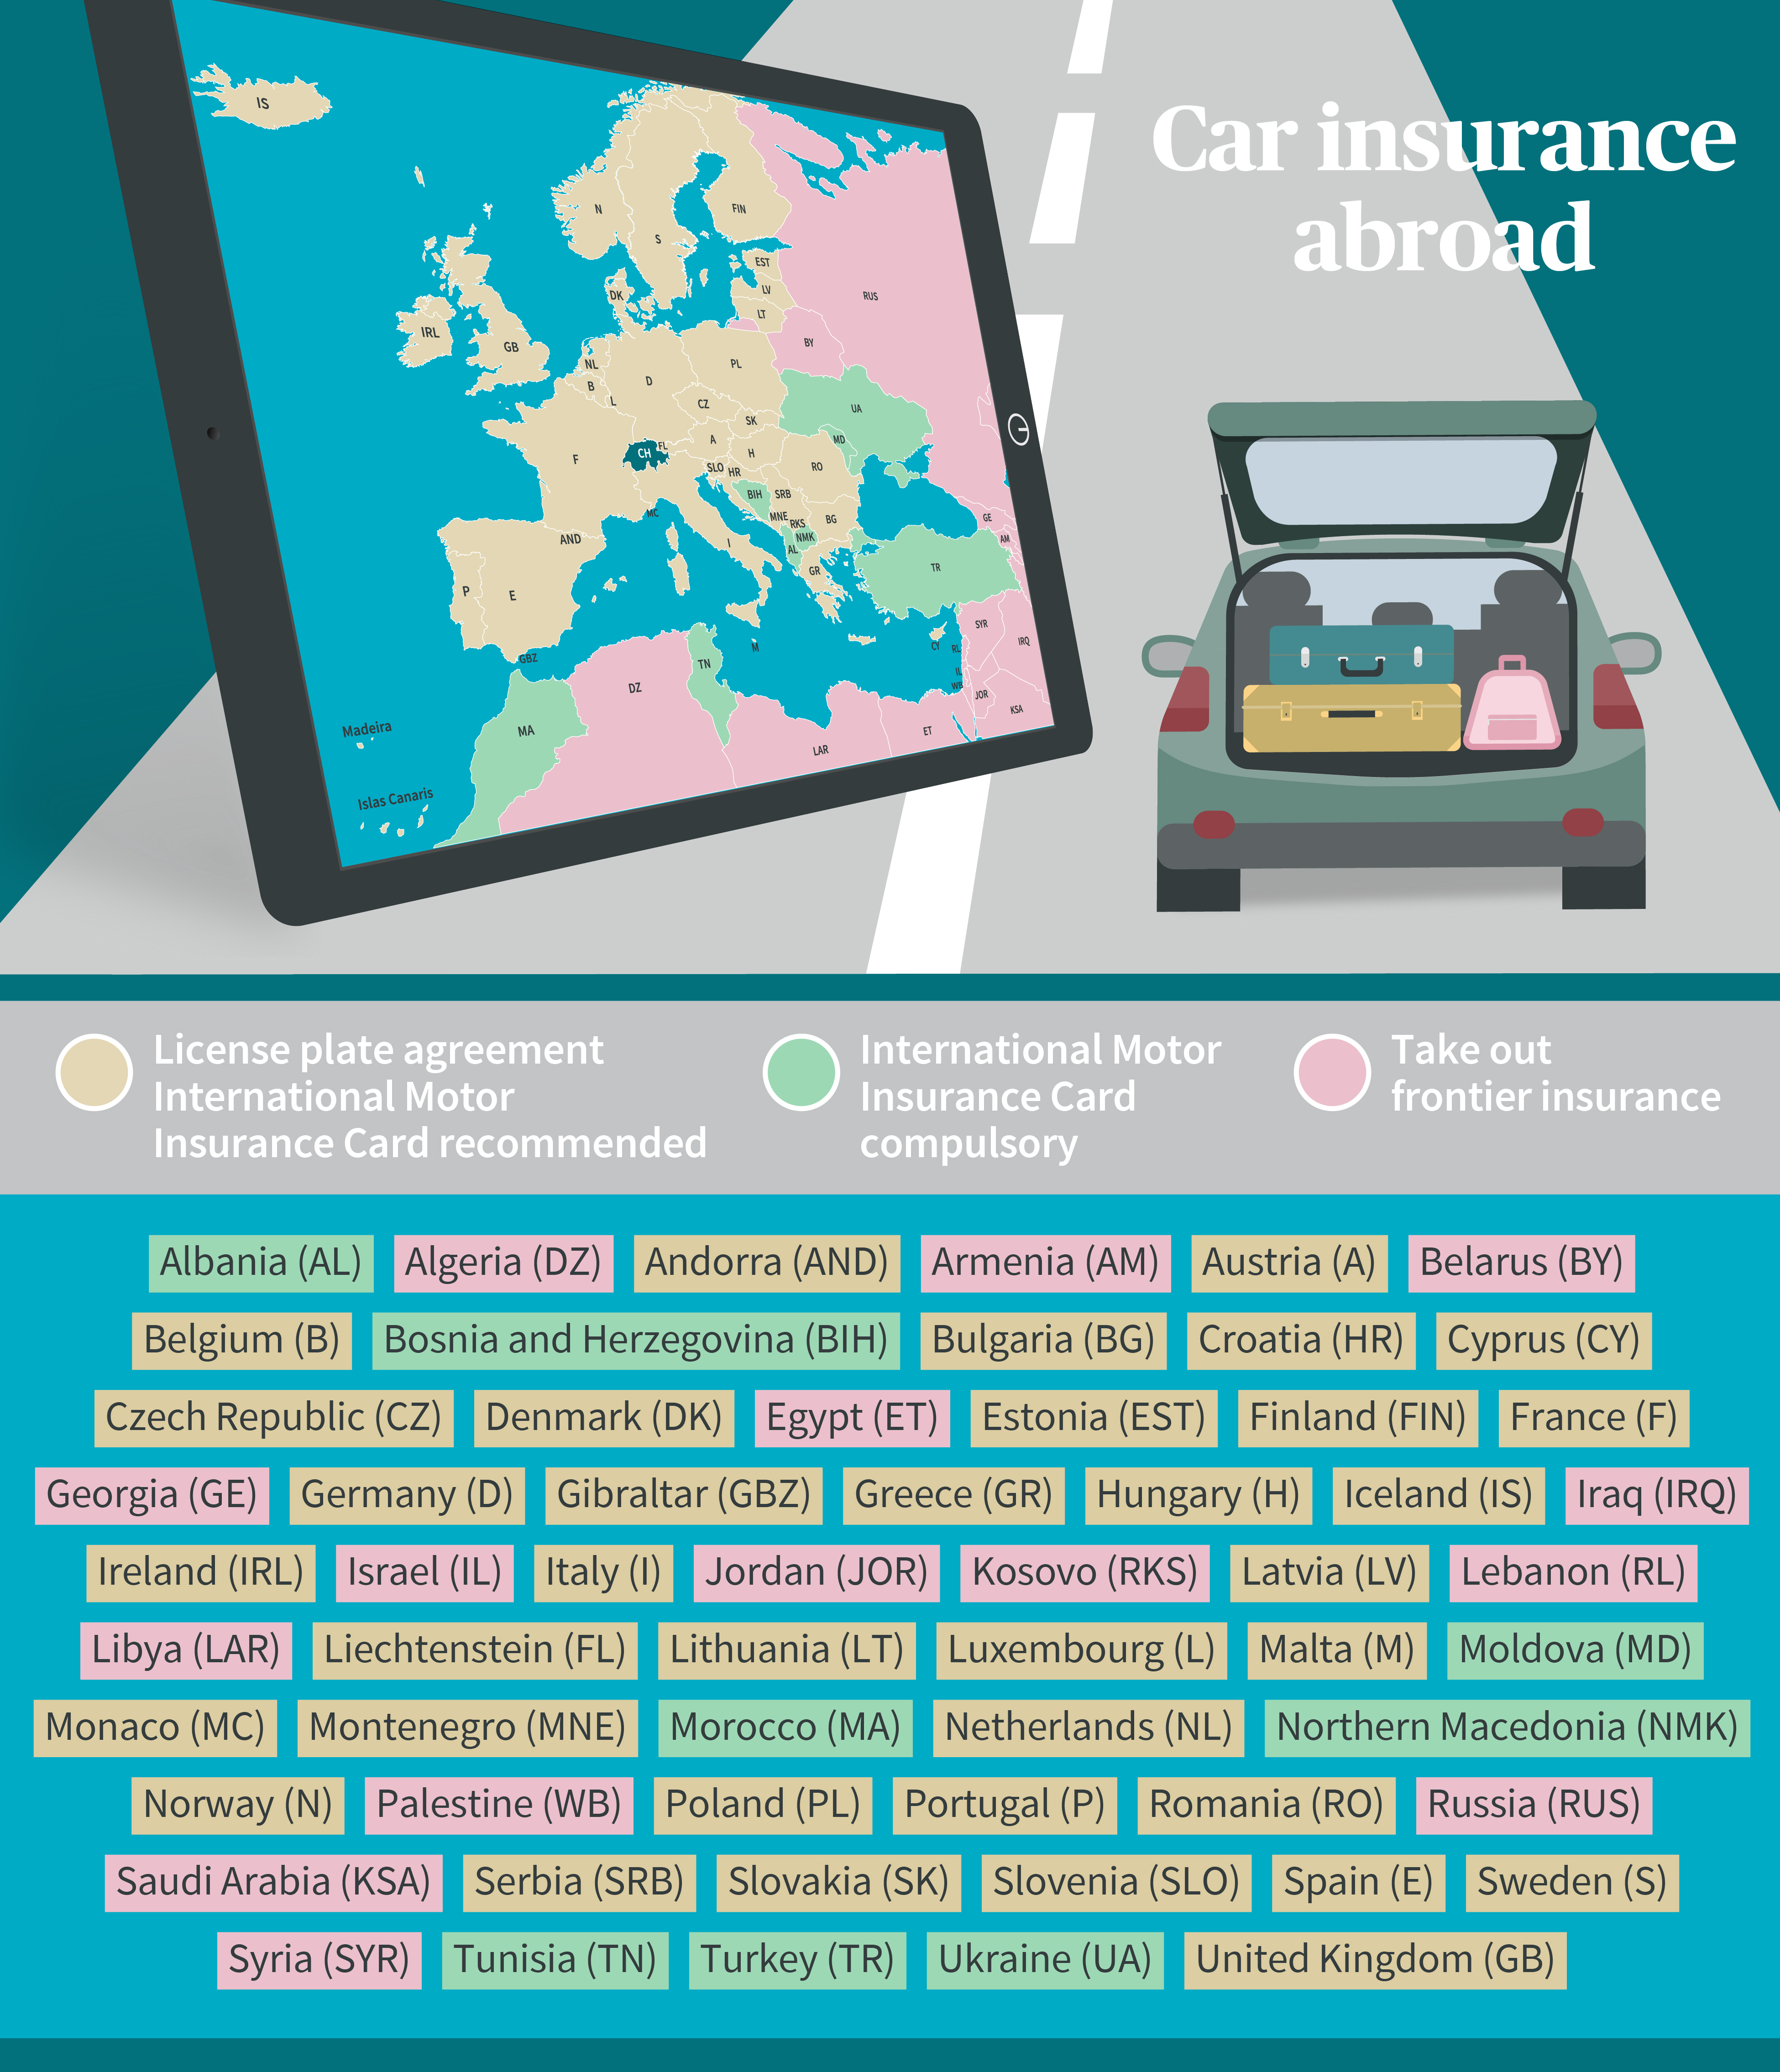 Graphic/country list, car insurance protection abroad (green card)